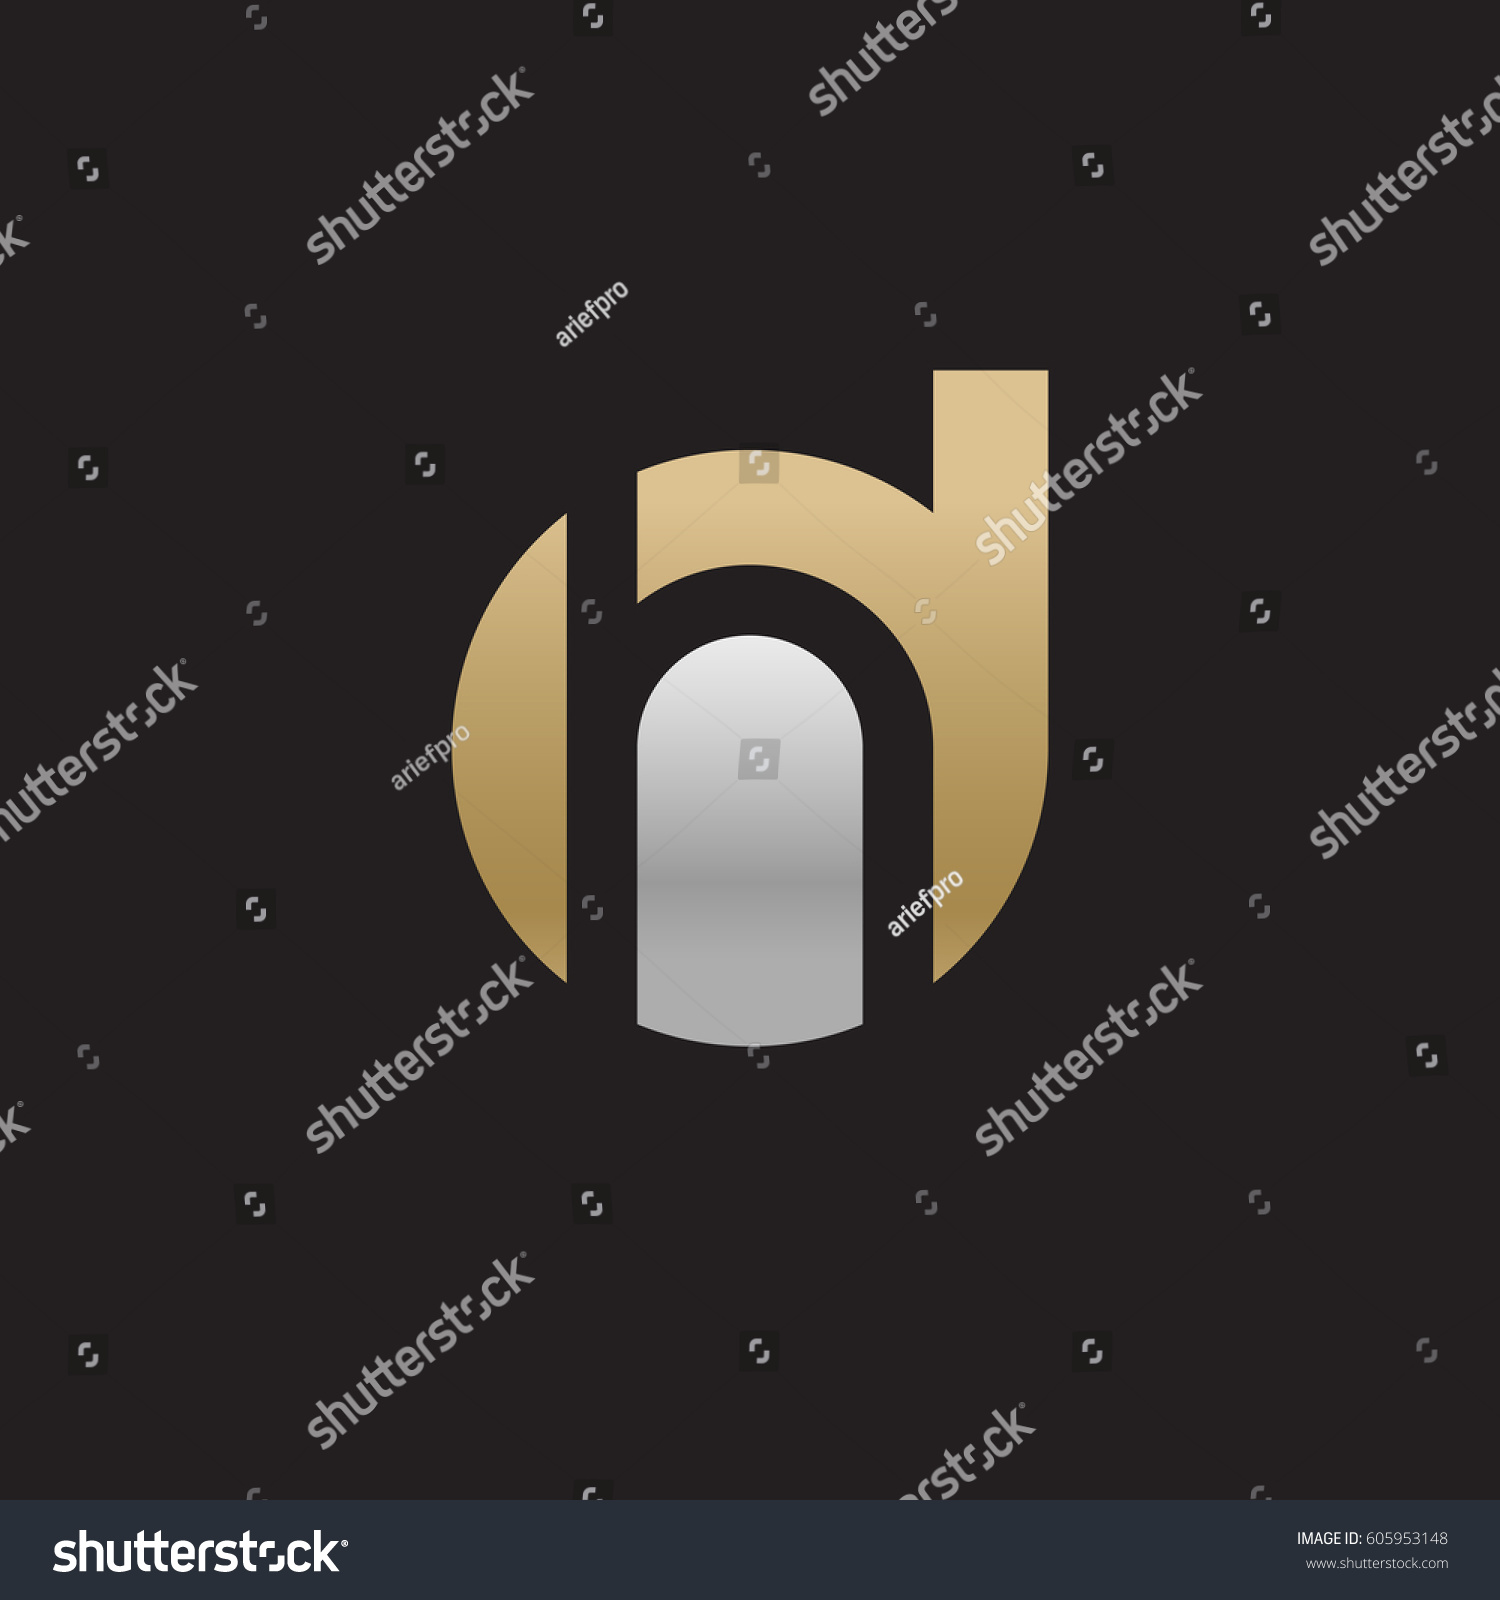 initial logo dh hd h inside stock photo (photo, vector, illustration